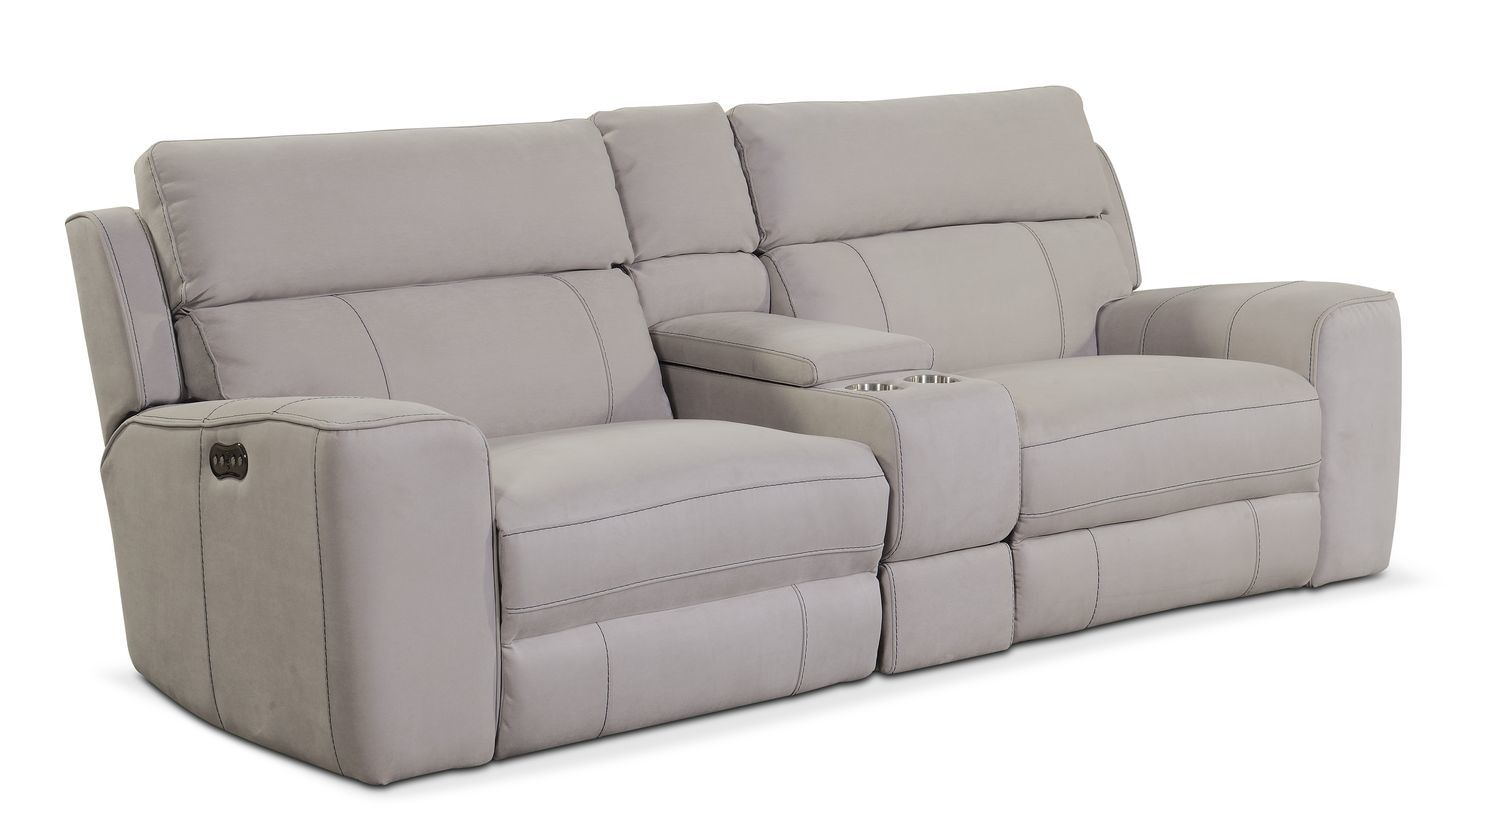 Newport 3 Piece Dual Power Reclining Sofa With Console Light Gray In 2020 Reclining Sofa Sofa Recliner